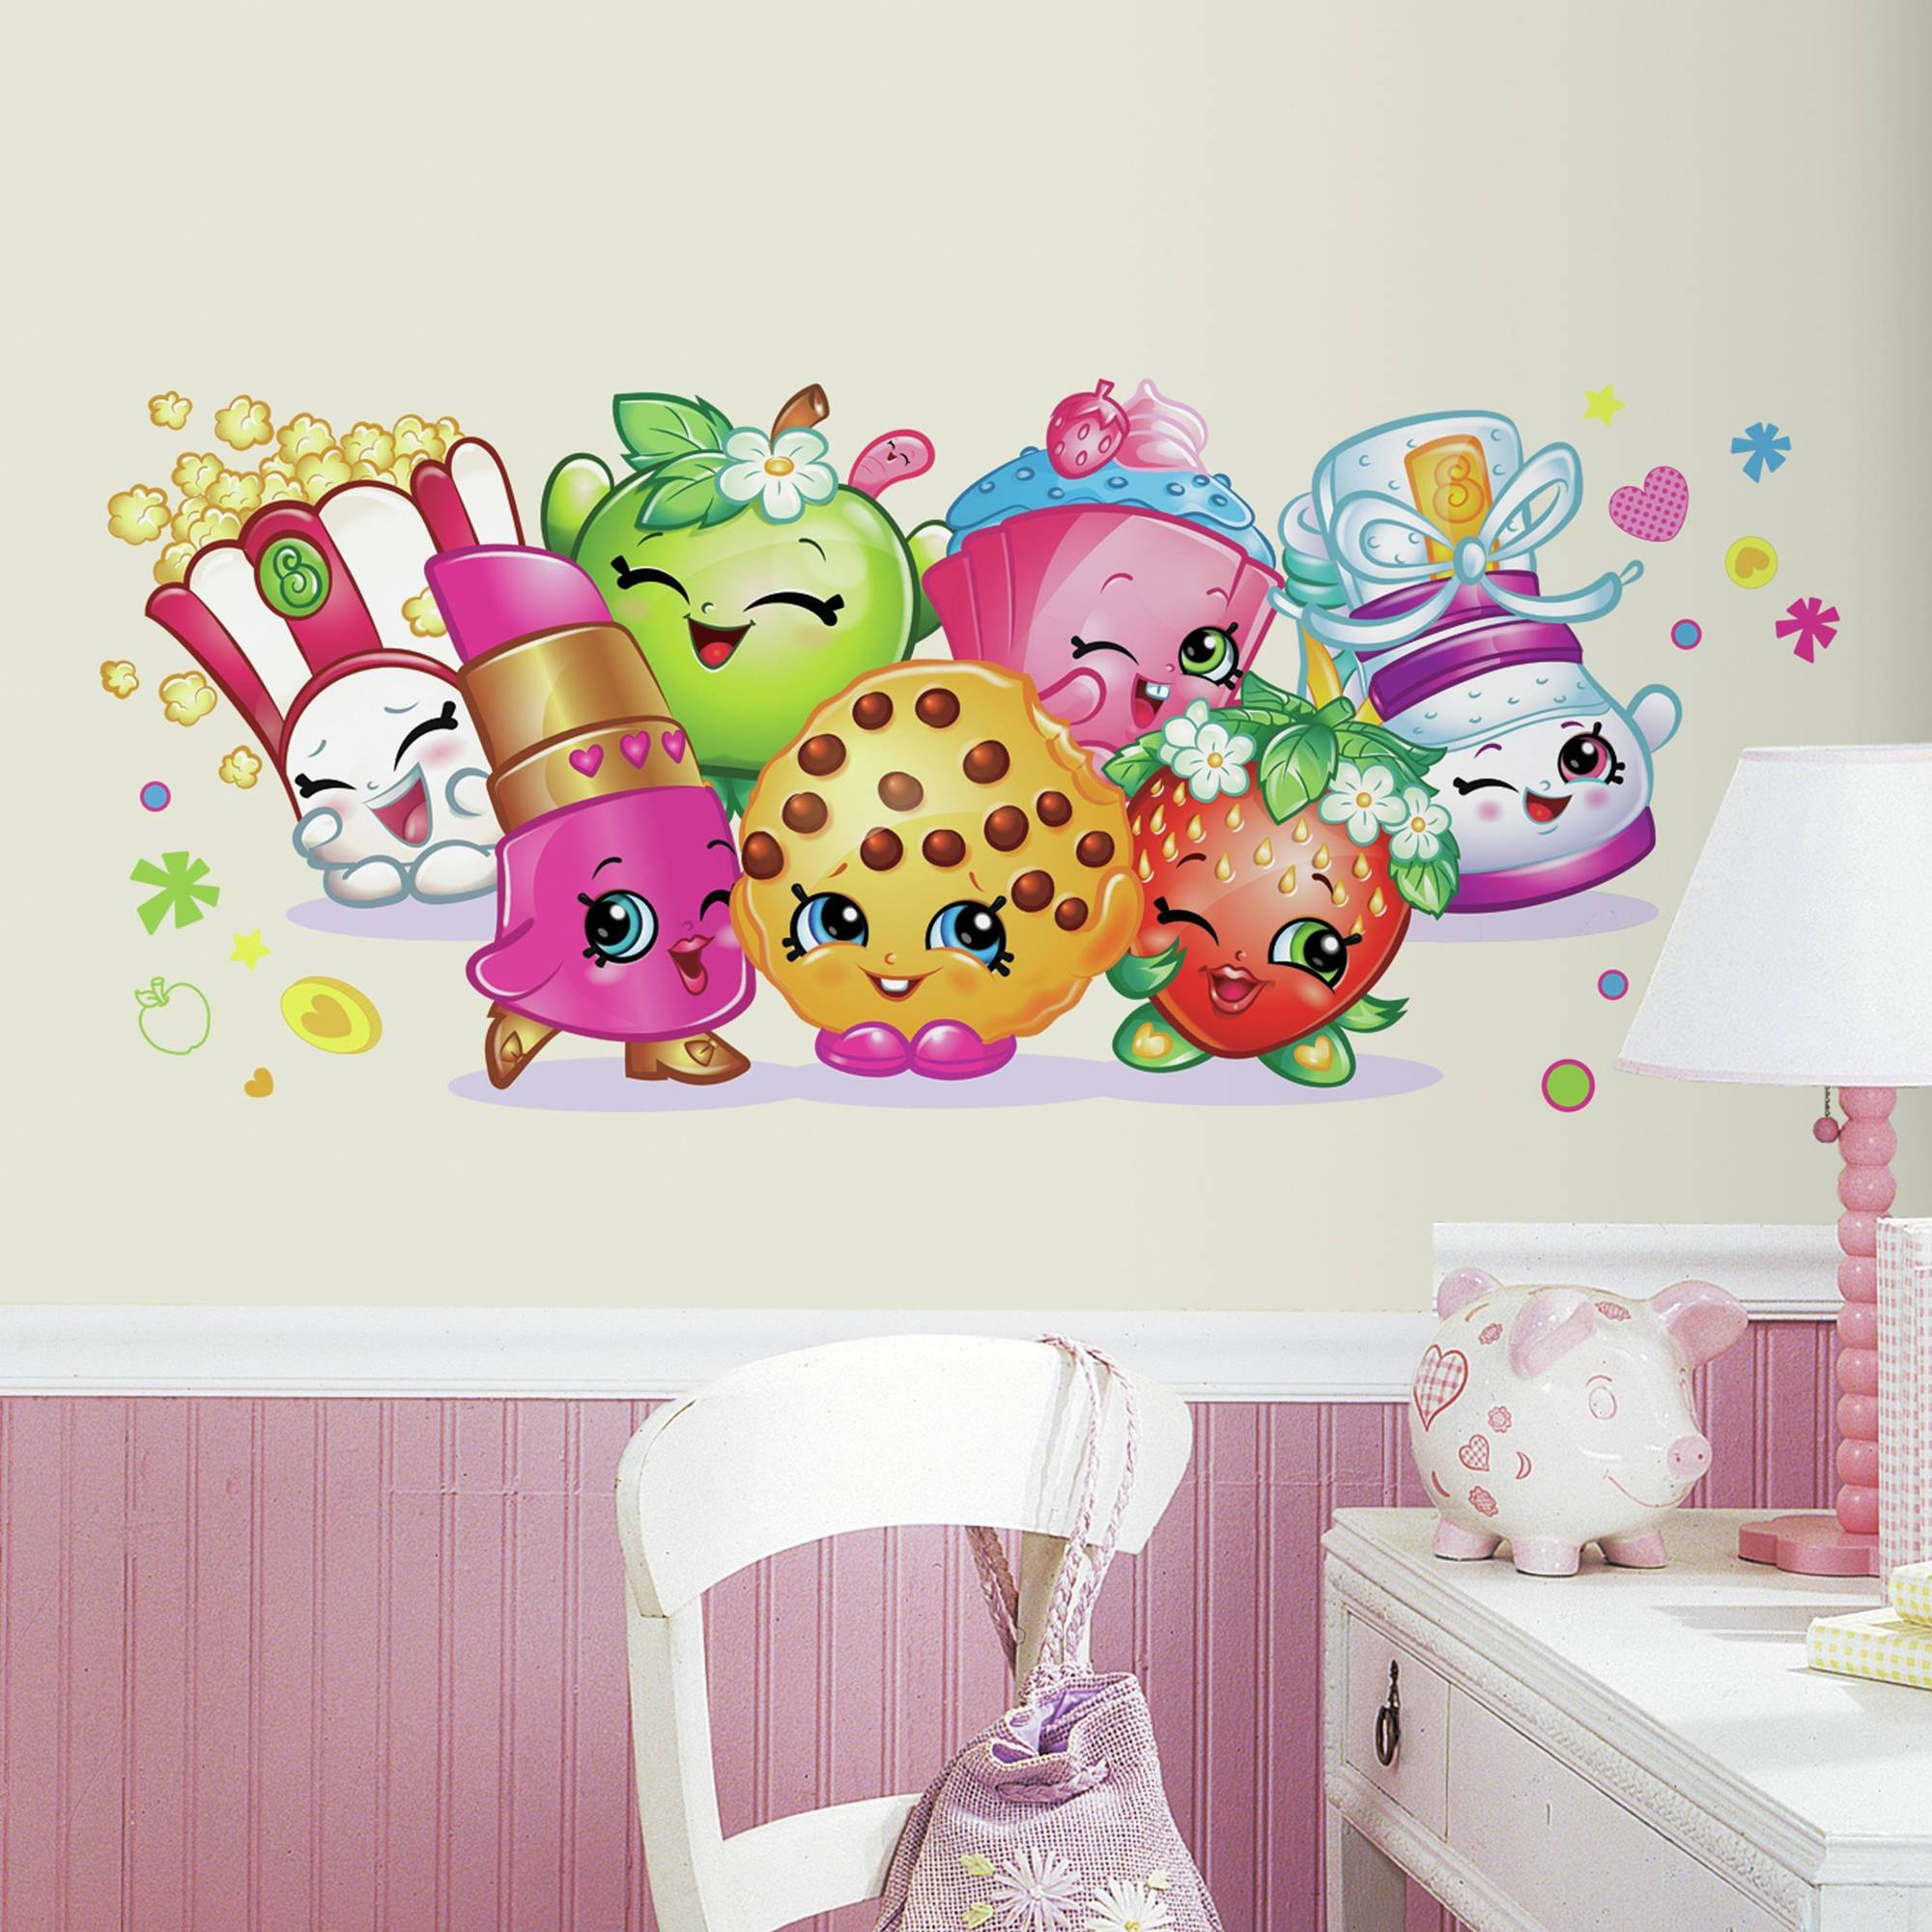 Roommates Shopkins Burst Peel And Stick Giant Wall Decals With Regard To Most Up To Date Walmart Wall Stickers (View 13 of 25)